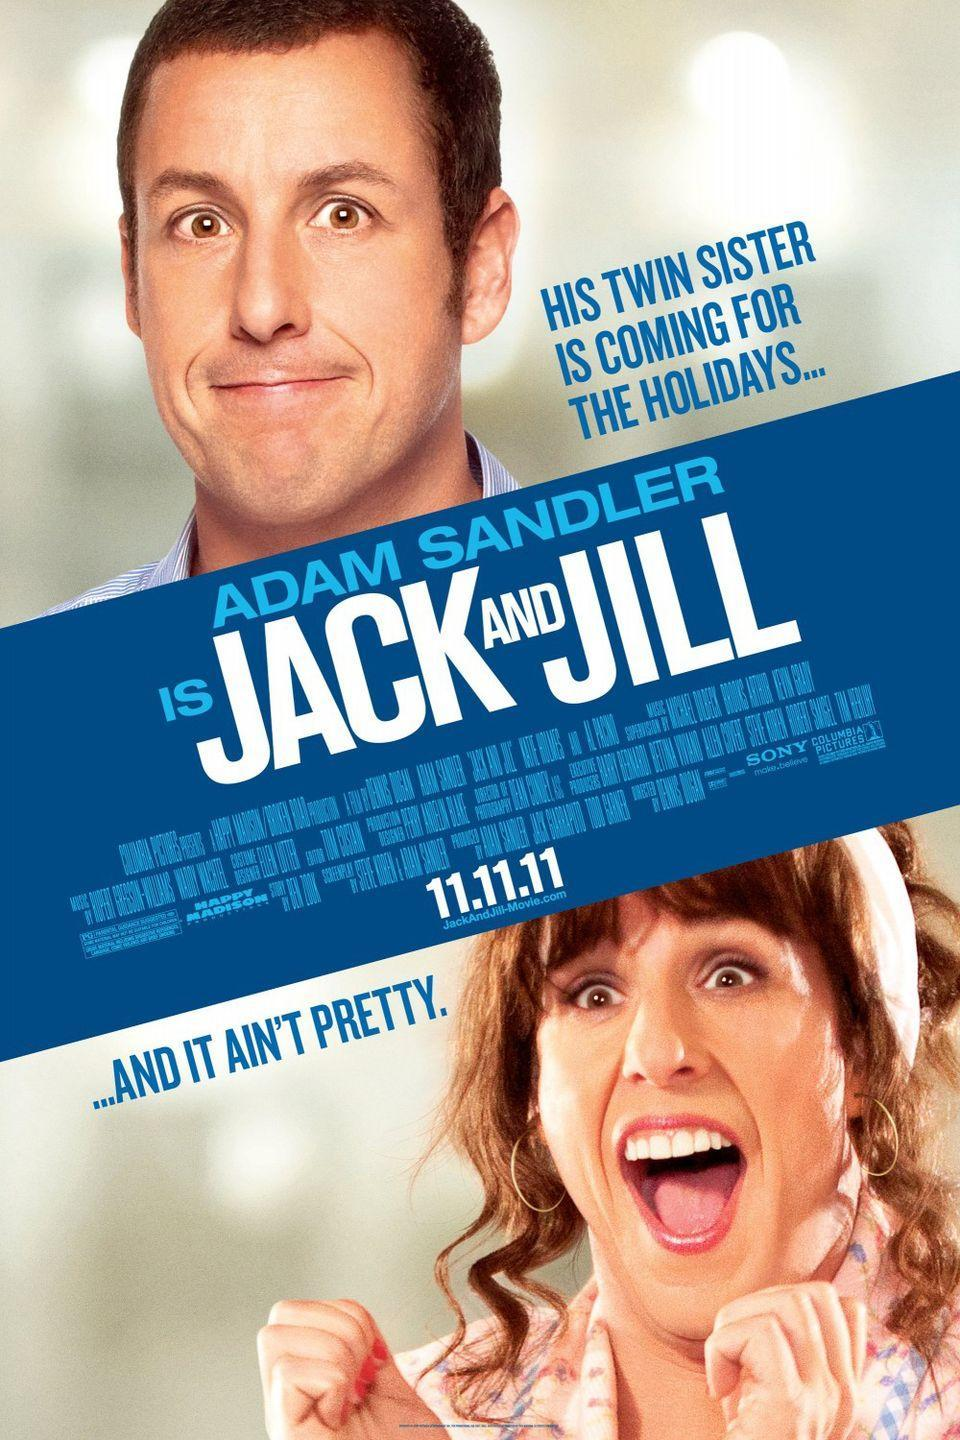 <p><strong>Role: </strong>Jack Sadelstein / Jill Sadelstein<br></p><p>Adam Sandler as a man is pretty insufferable. Now, throw on a wig, some makeup, and his incredibly broad concepts of femininity and womanhood, and you get what is possibly a masterclass in misogyny! <br></p>